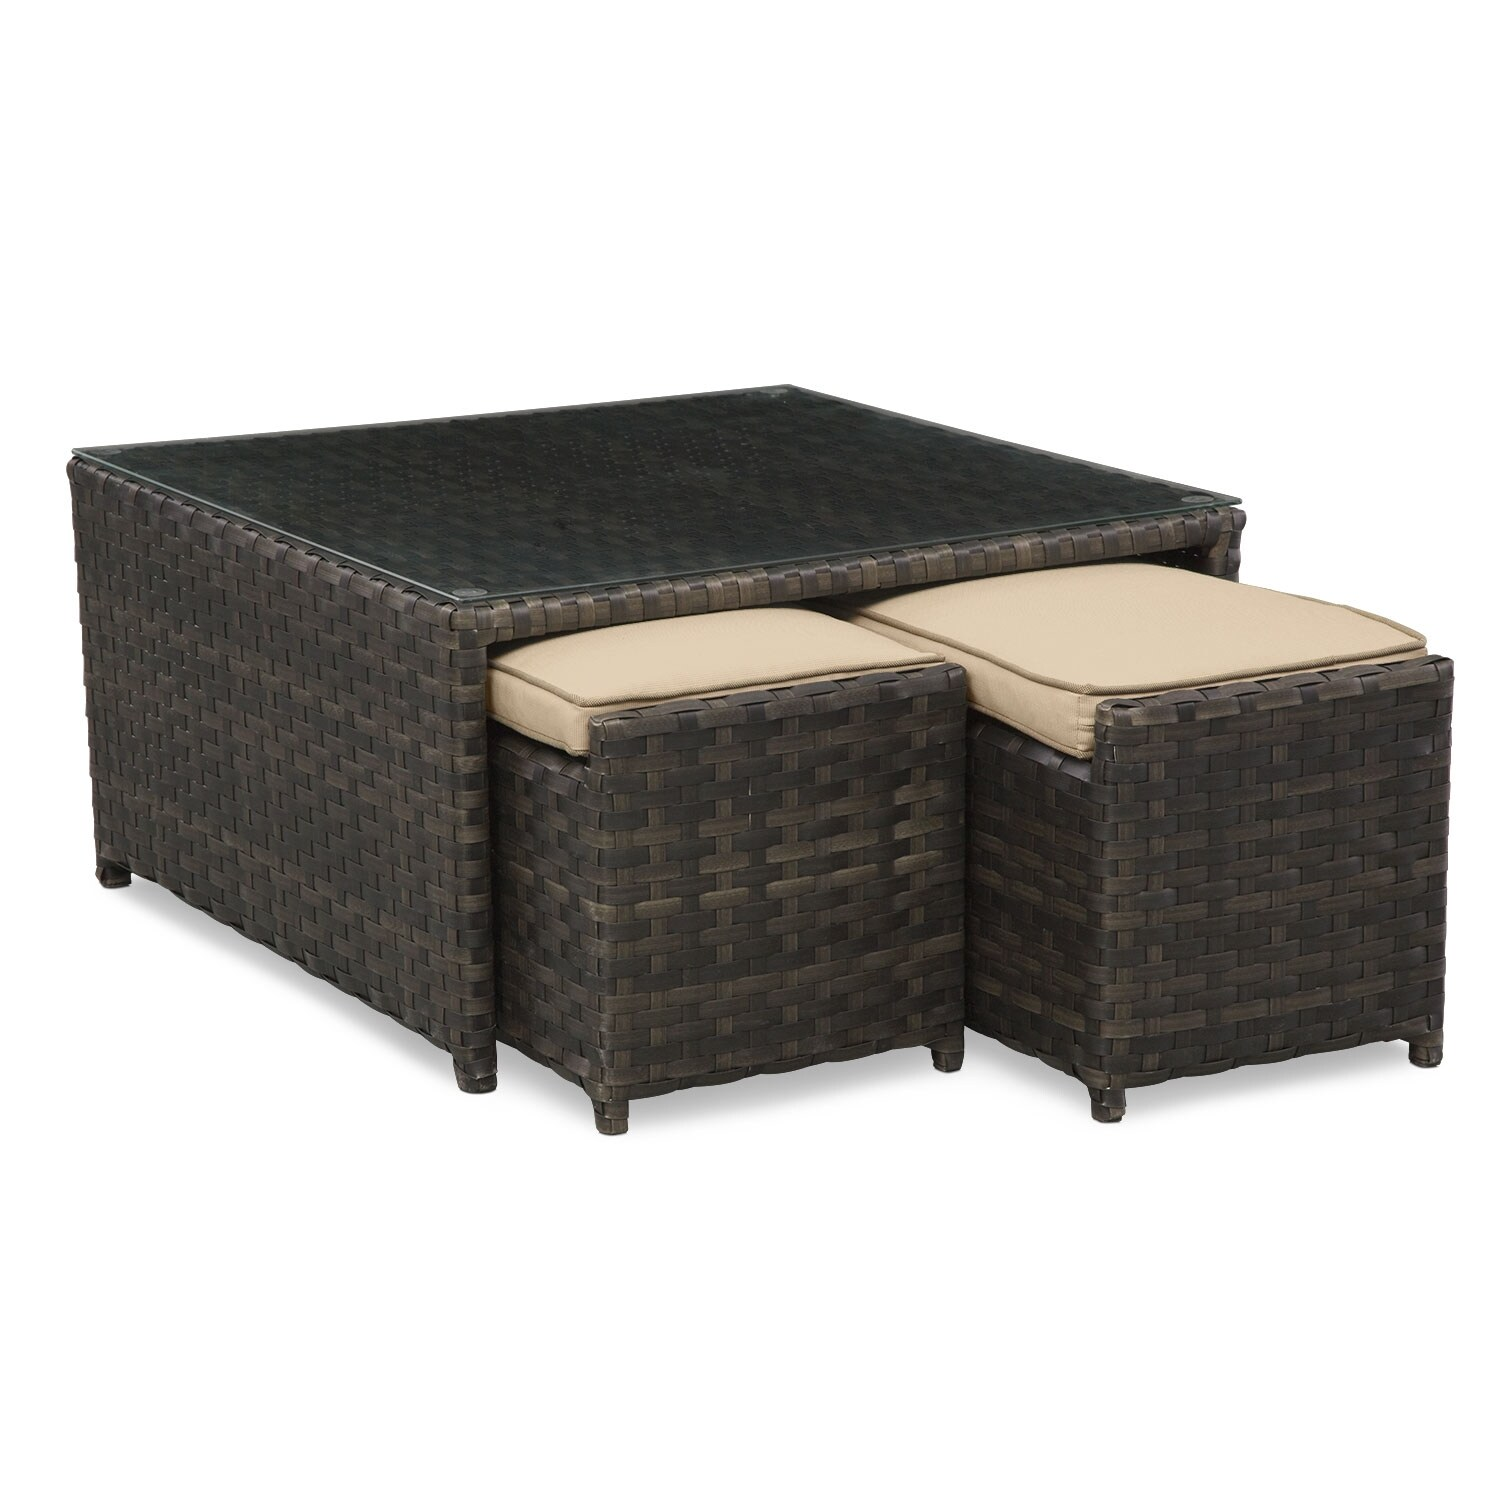 Outdoor Furniture - Regatta 3-Piece Nesting Cocktail Table - Brown